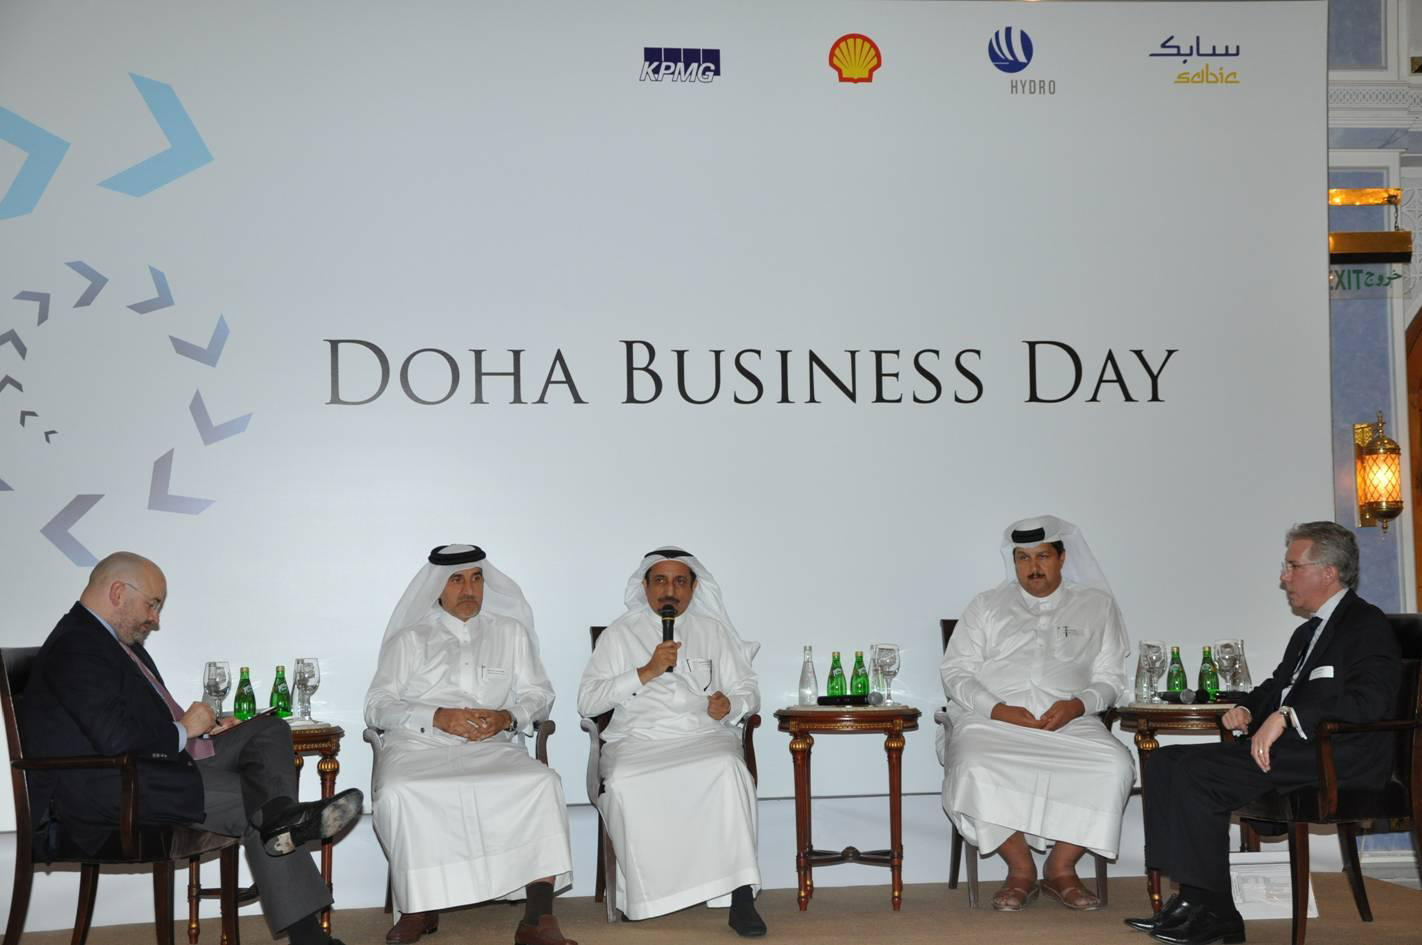 SABIC is making responsible changes to its business vision to meet future sustainability challenges, CEO tells Doha forum